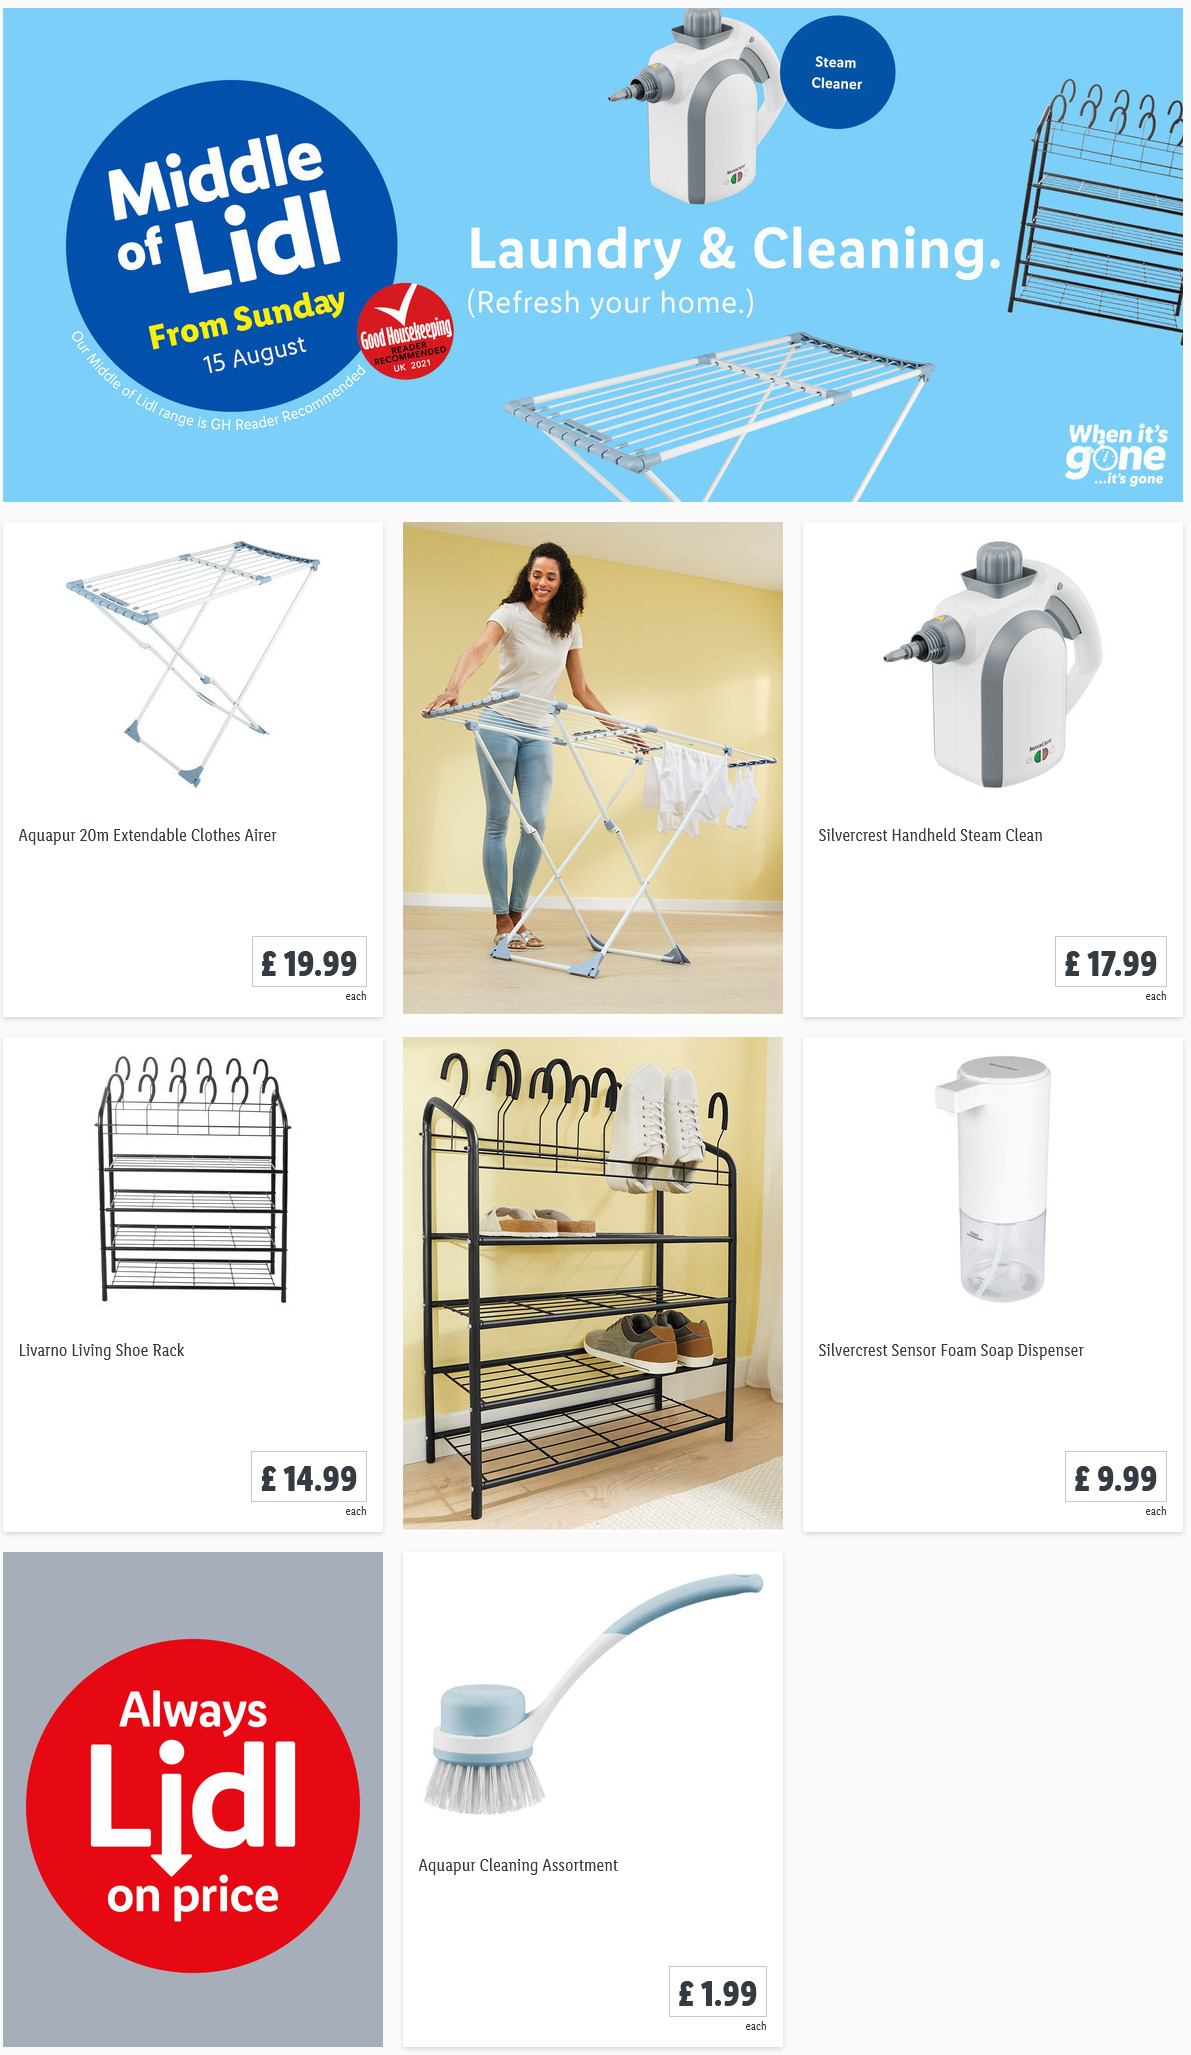 LiDL Laundry & Cleaning from 15th August 2021 LiDL Sunday Offers